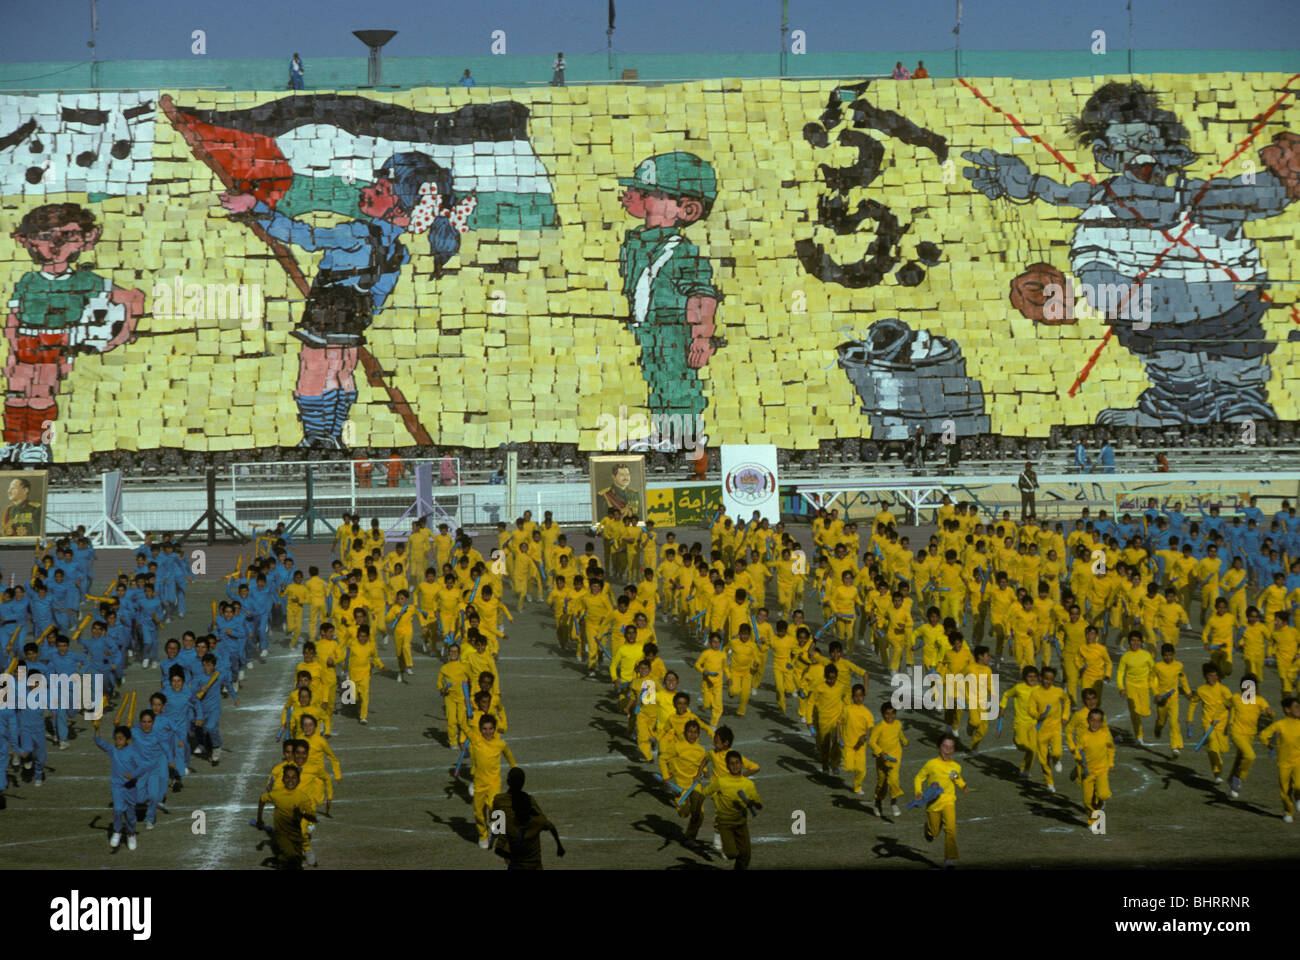 Giant tableau at Police Games in National Stadium Baghdad in late 1970s Iraq - Stock Image